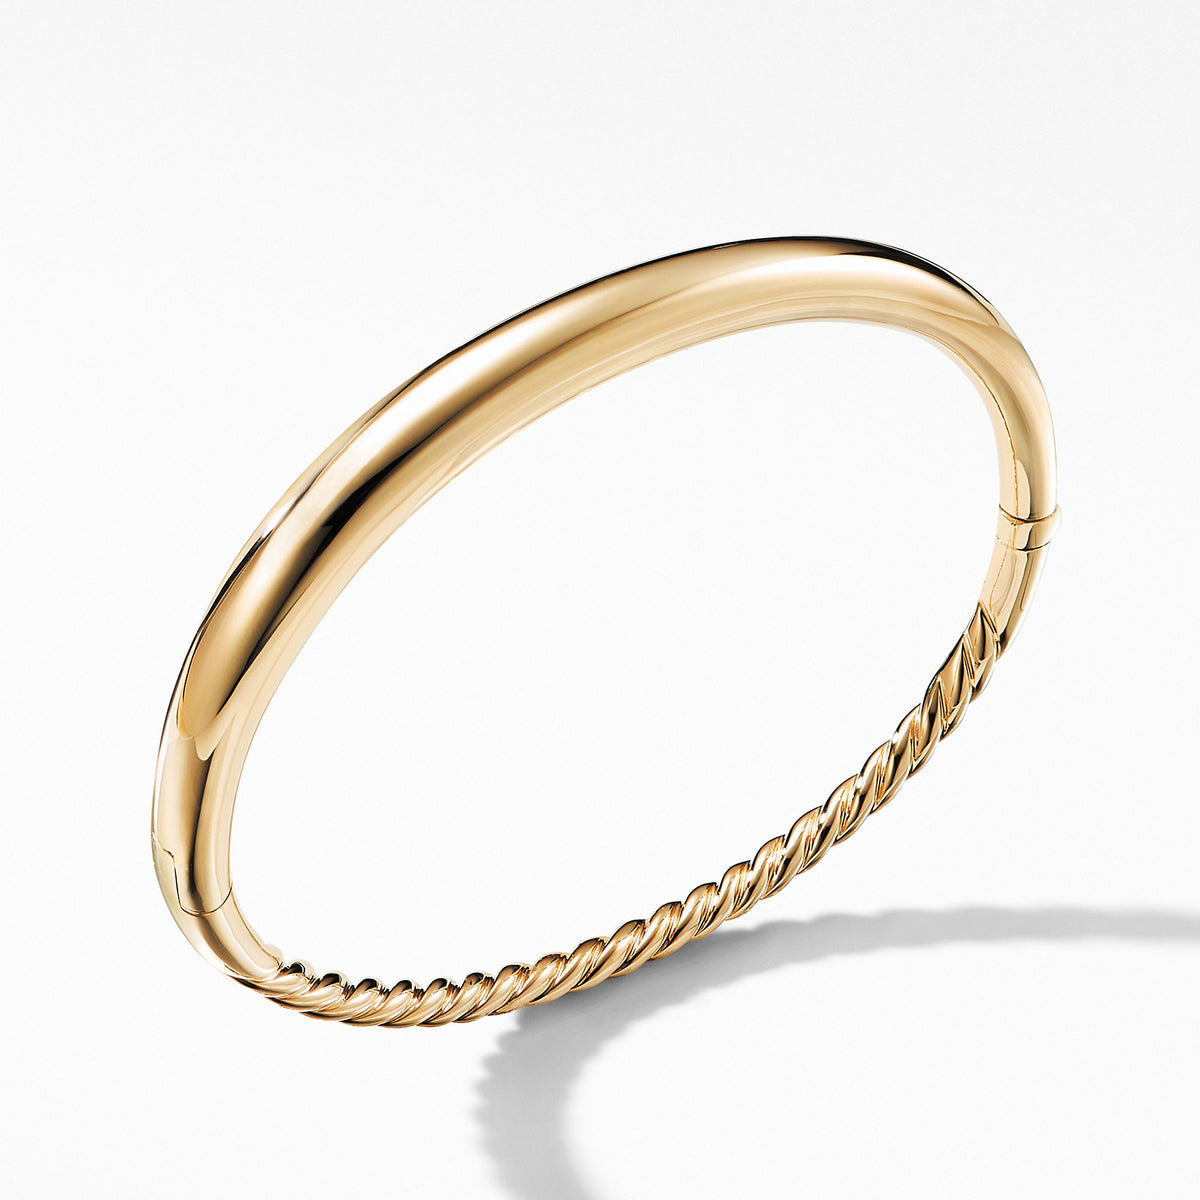 Pure Form Smooth Bracelet in 18K Gold